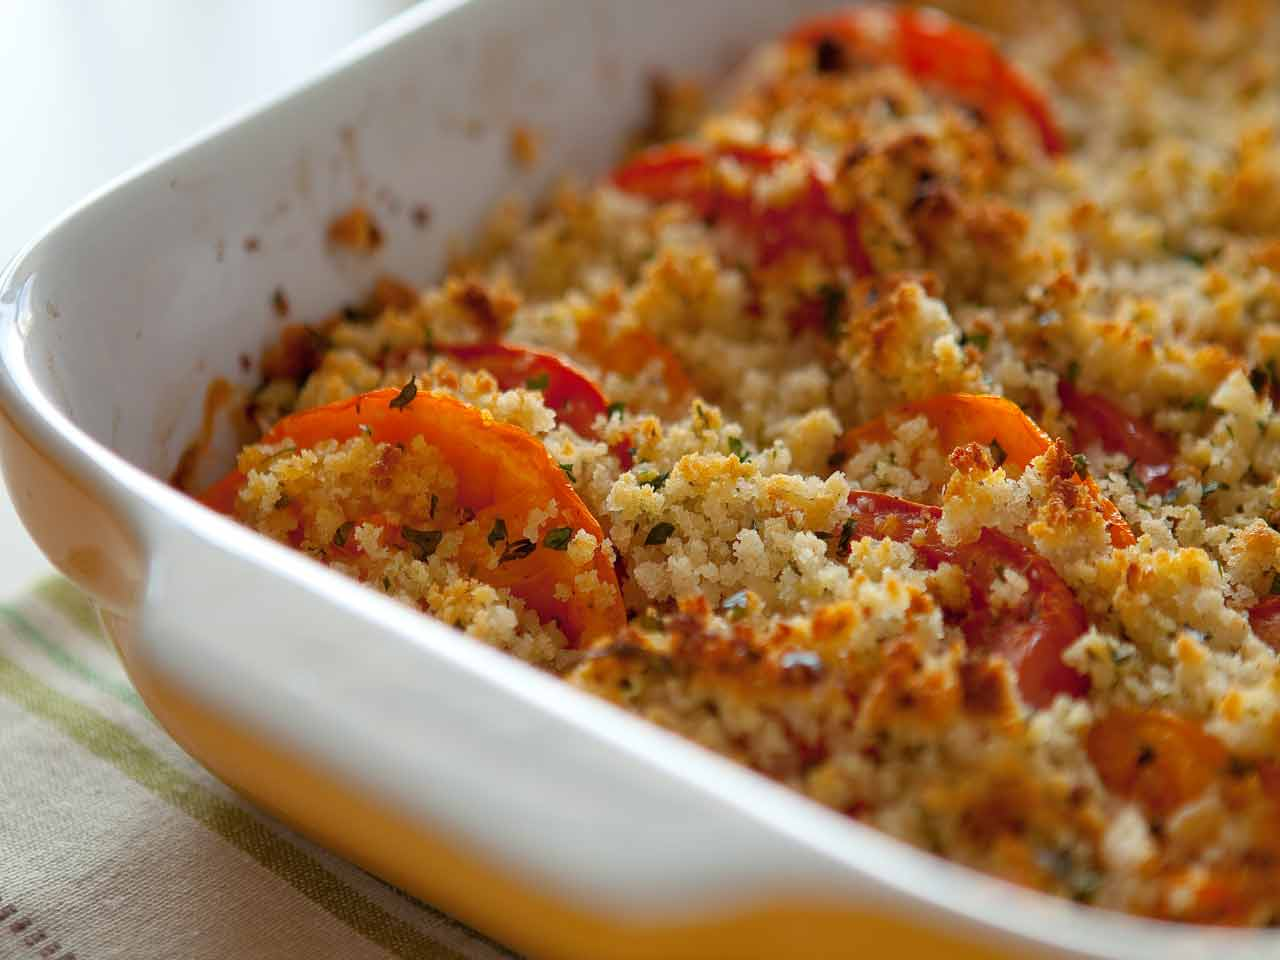 Tomato brown betty